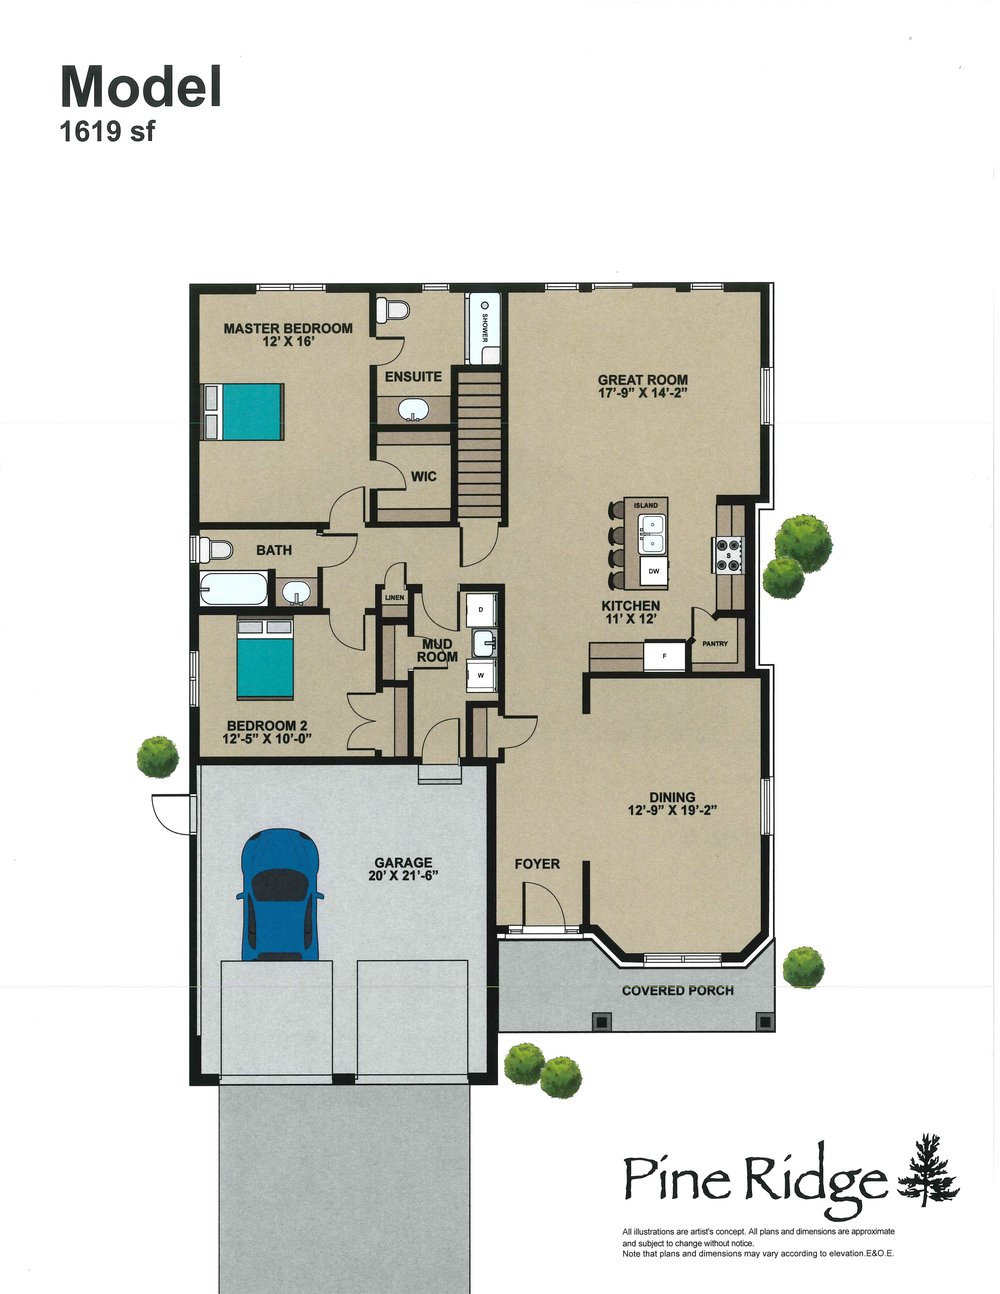 pineridge floorplans 1_Page_2.jpg